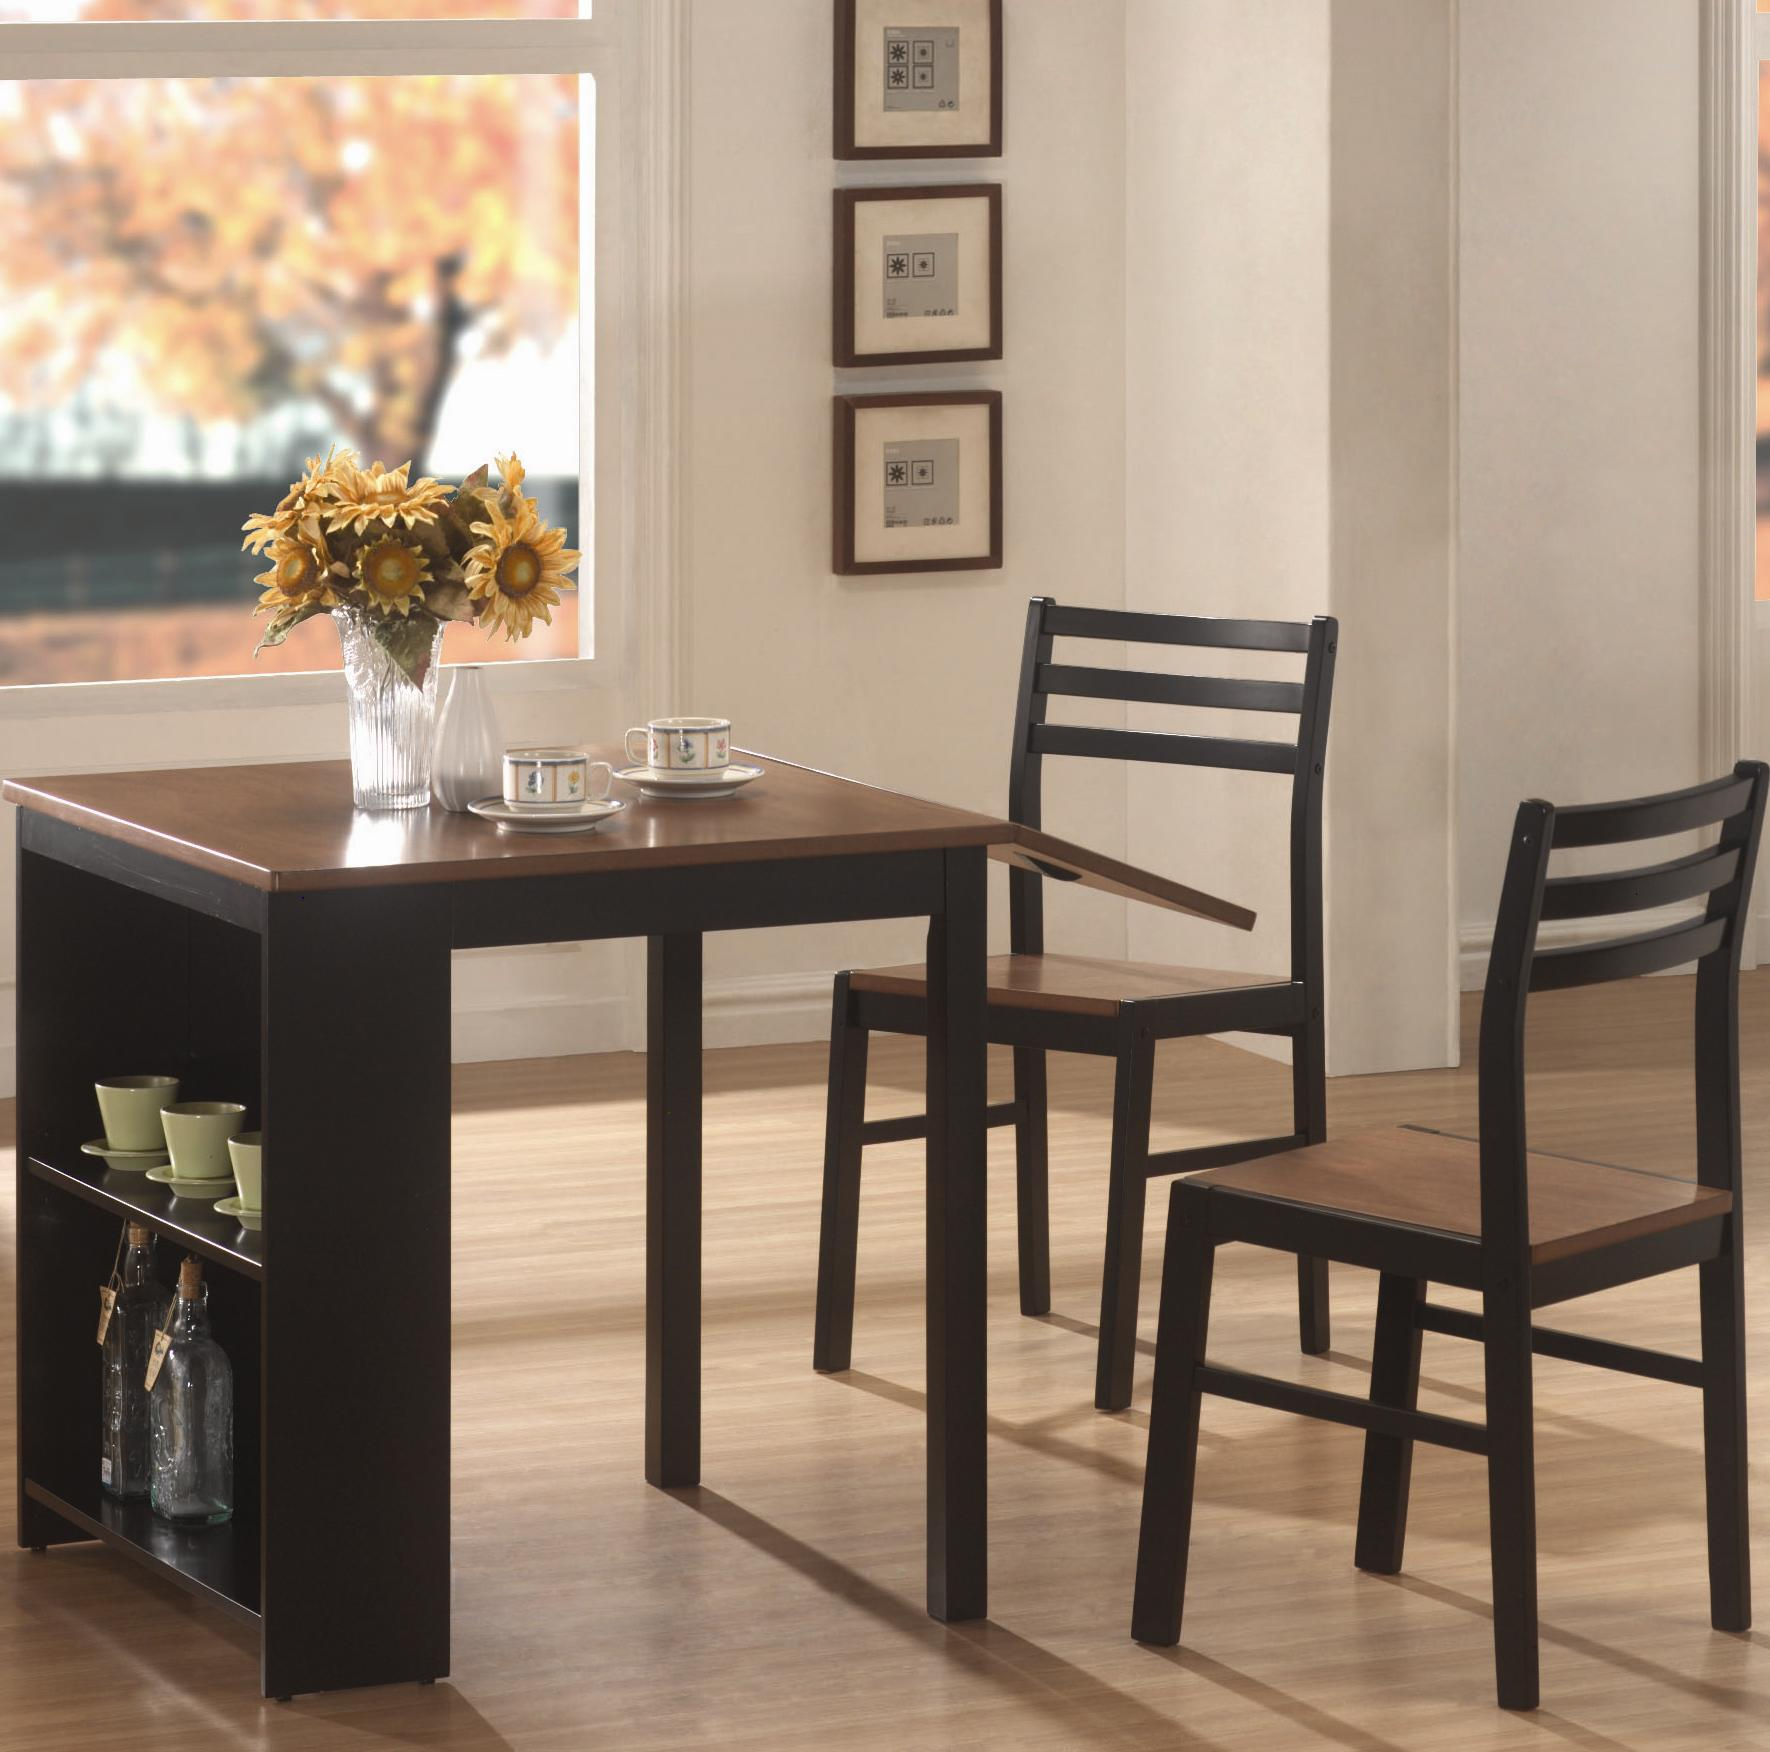 3 Piece Breakfast Table